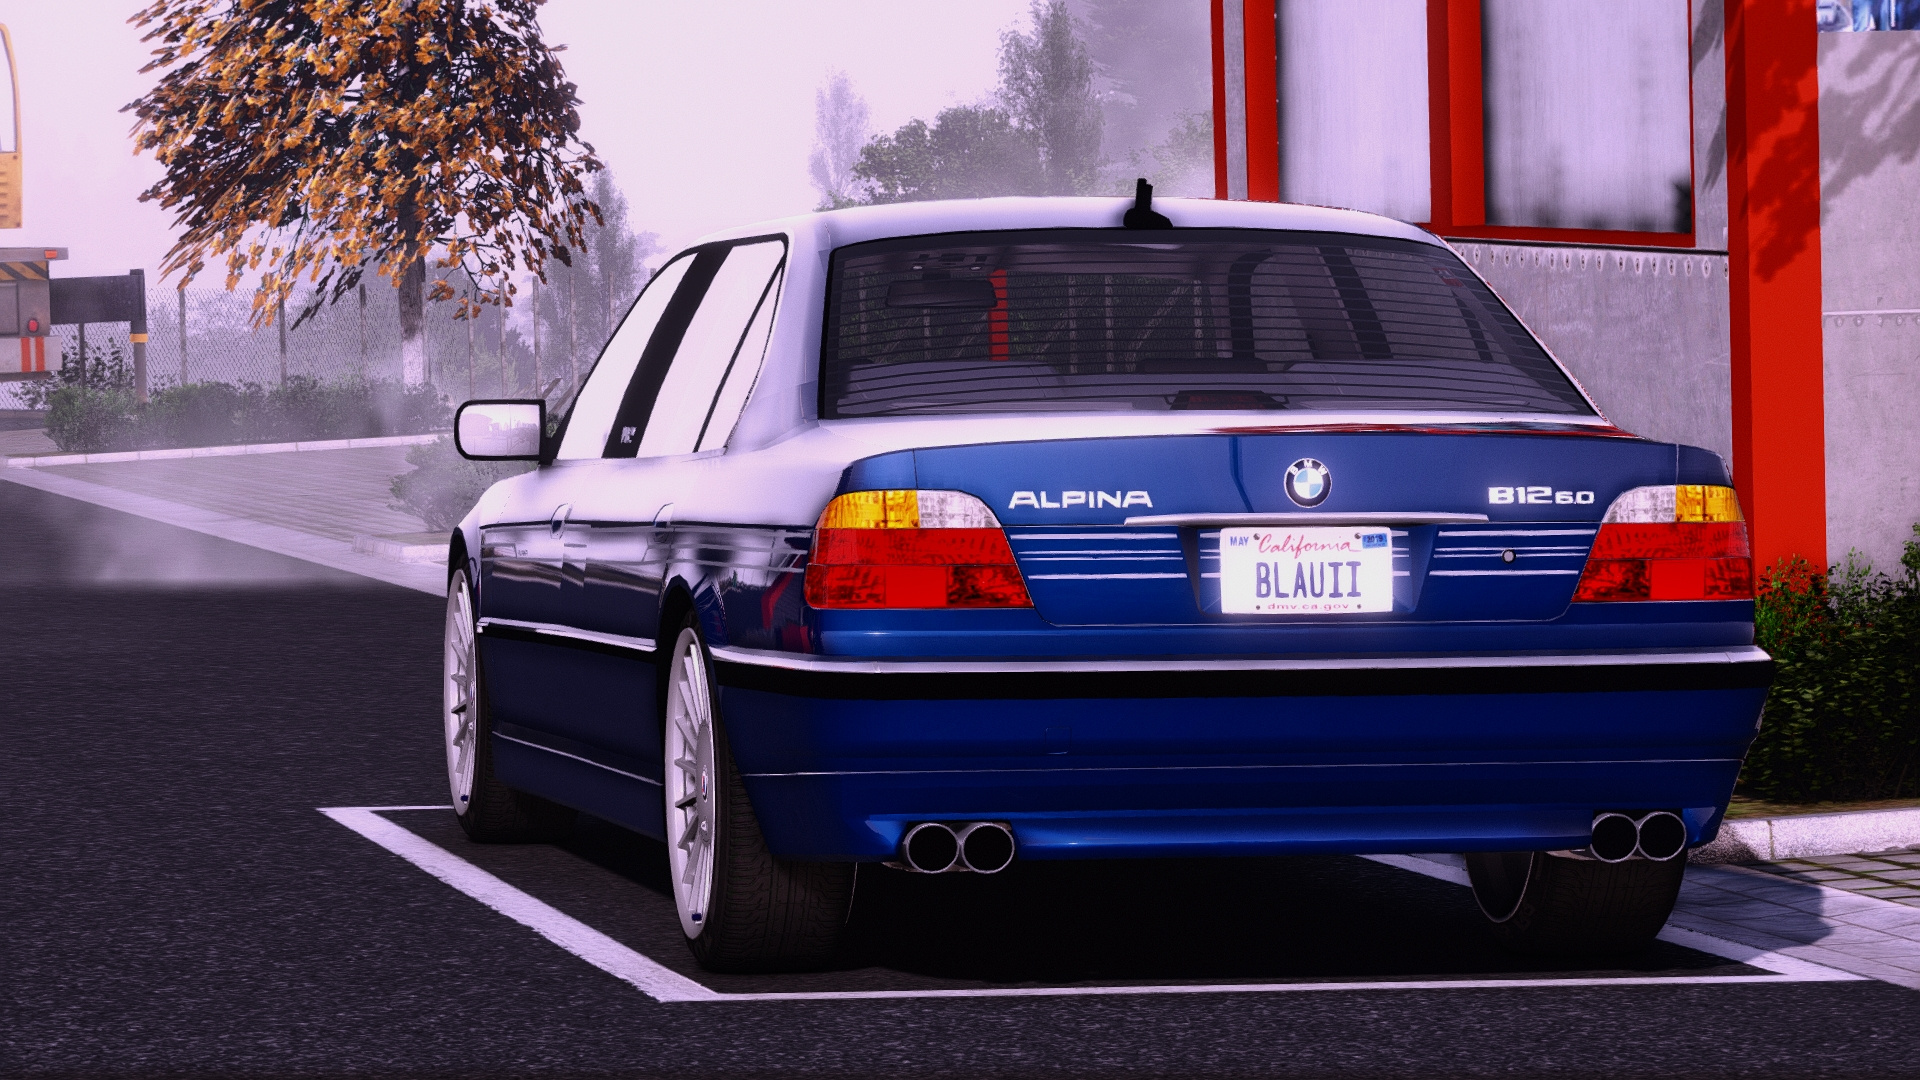 2001 Bmw Alpina B12 6 0 Lang E38 Fl Add On Replace Extras Gta5 Mods Com